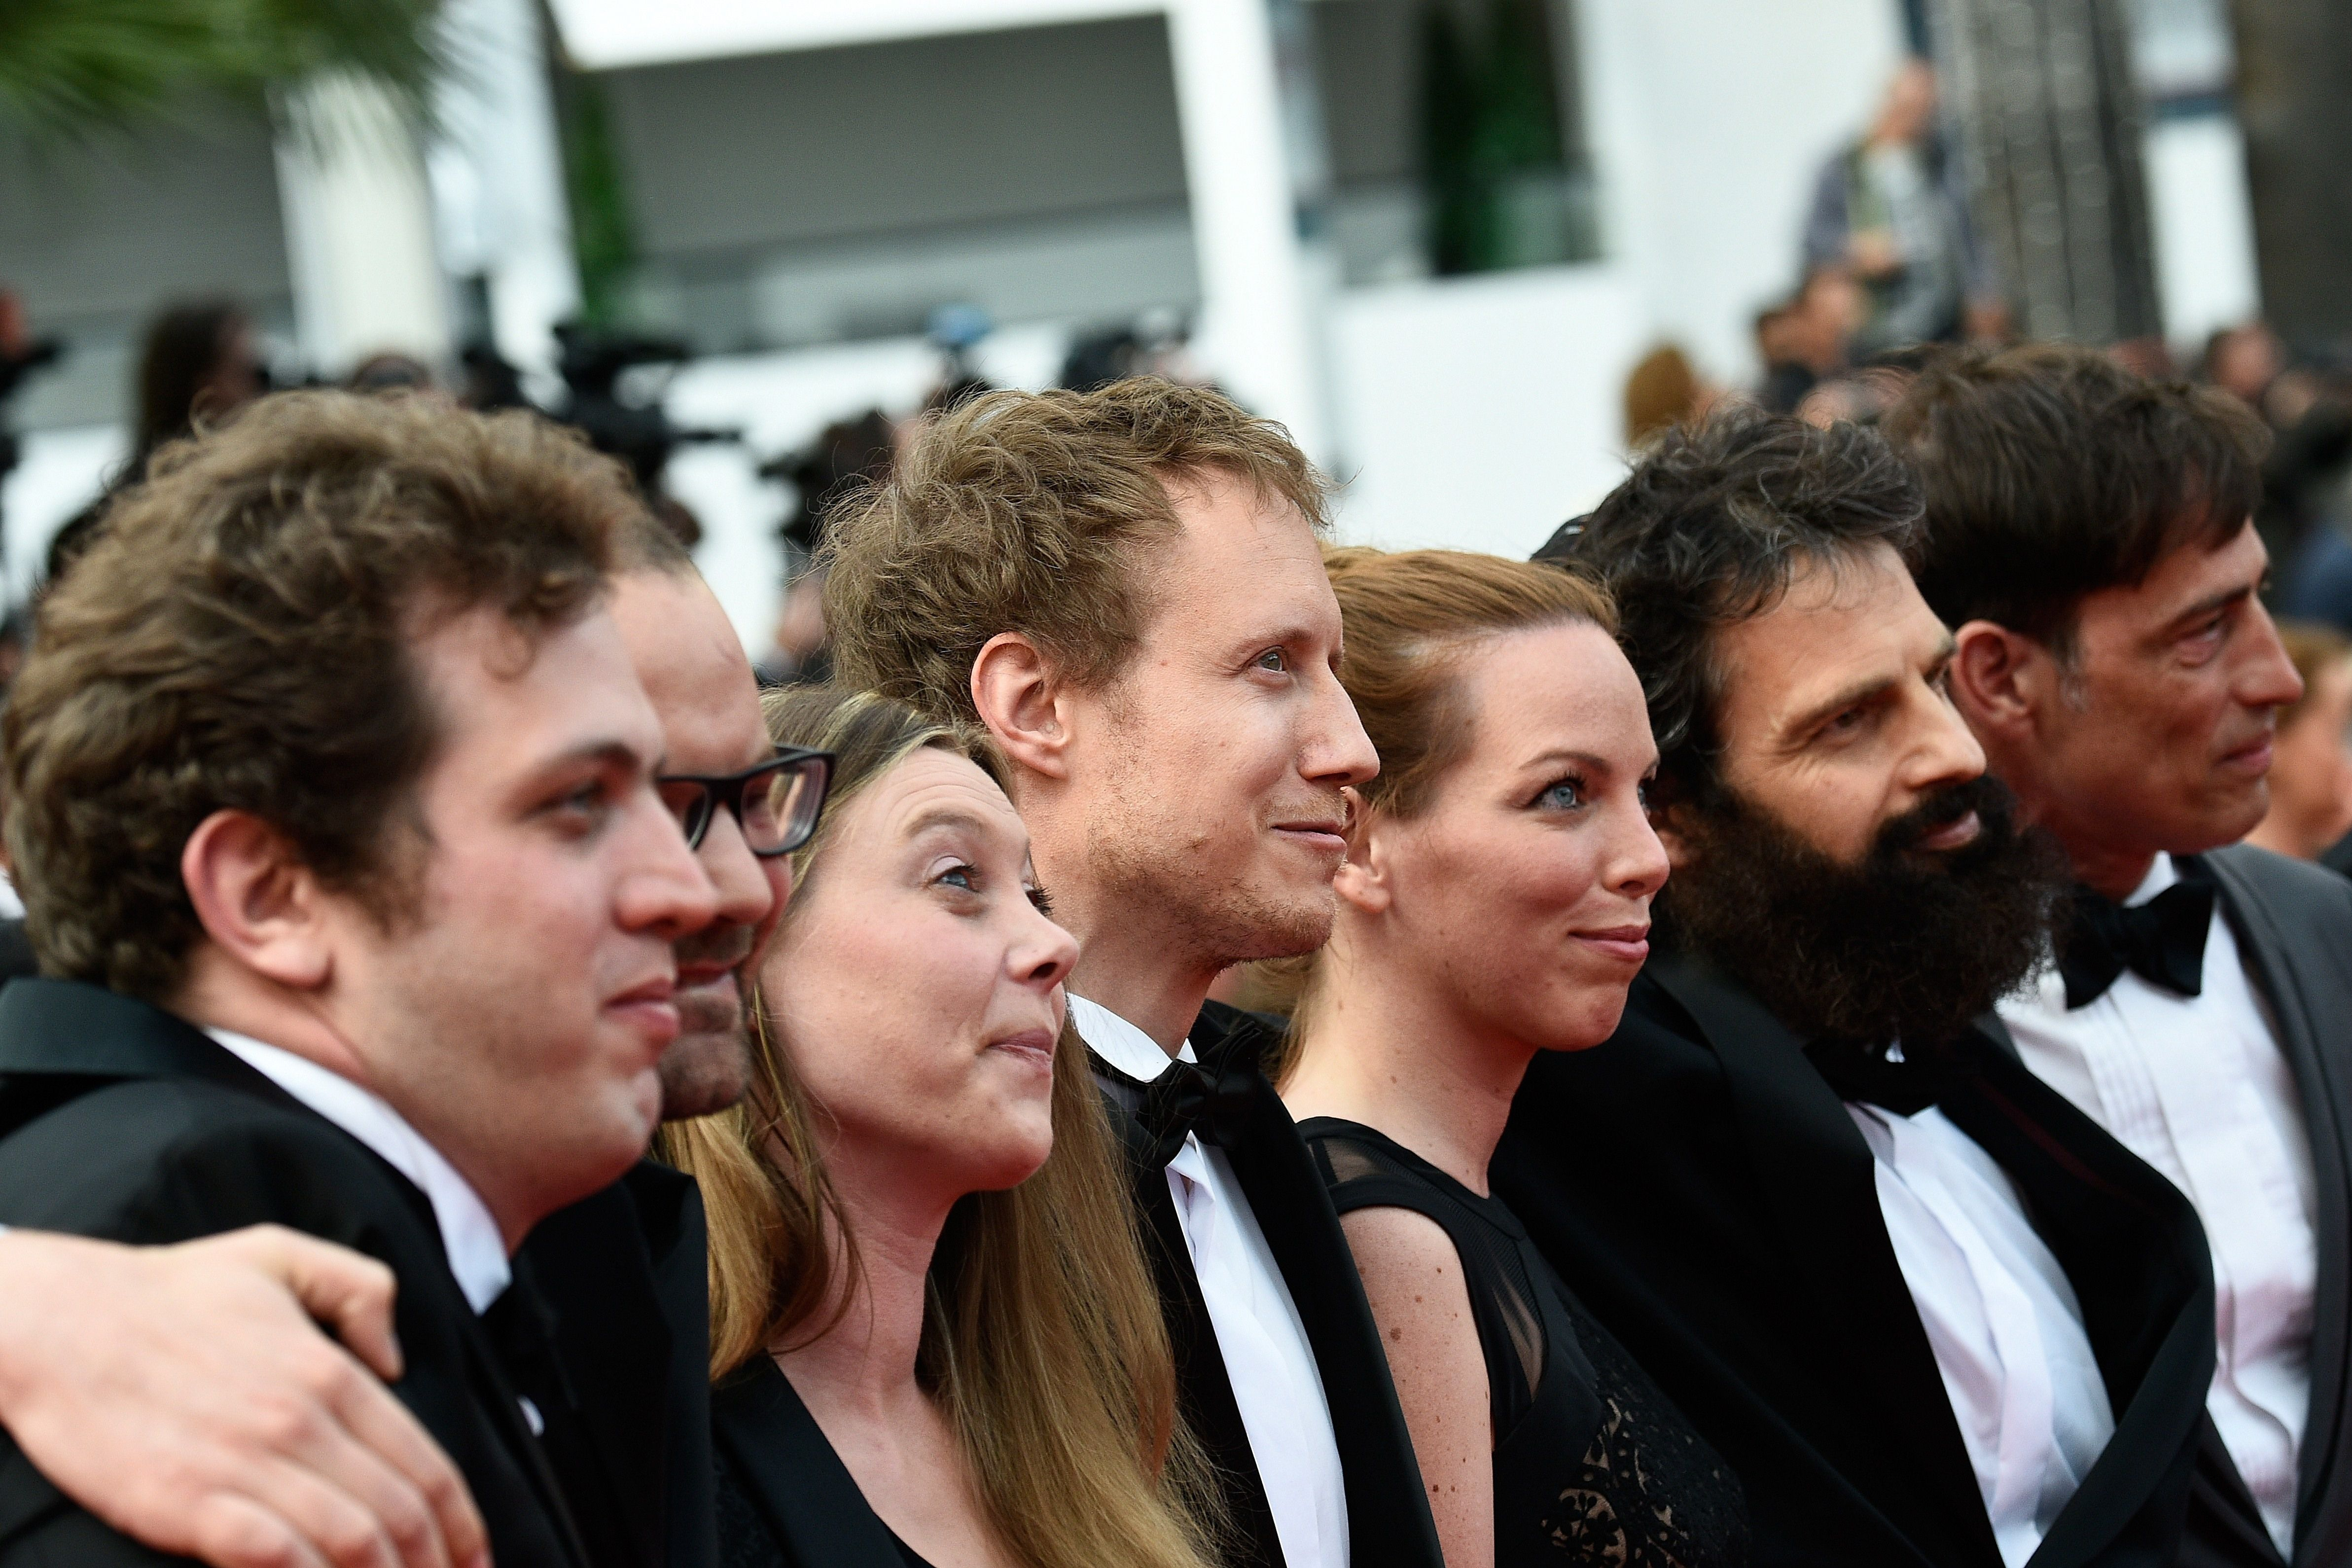 The 'Son of Saul' cast at Cannes.